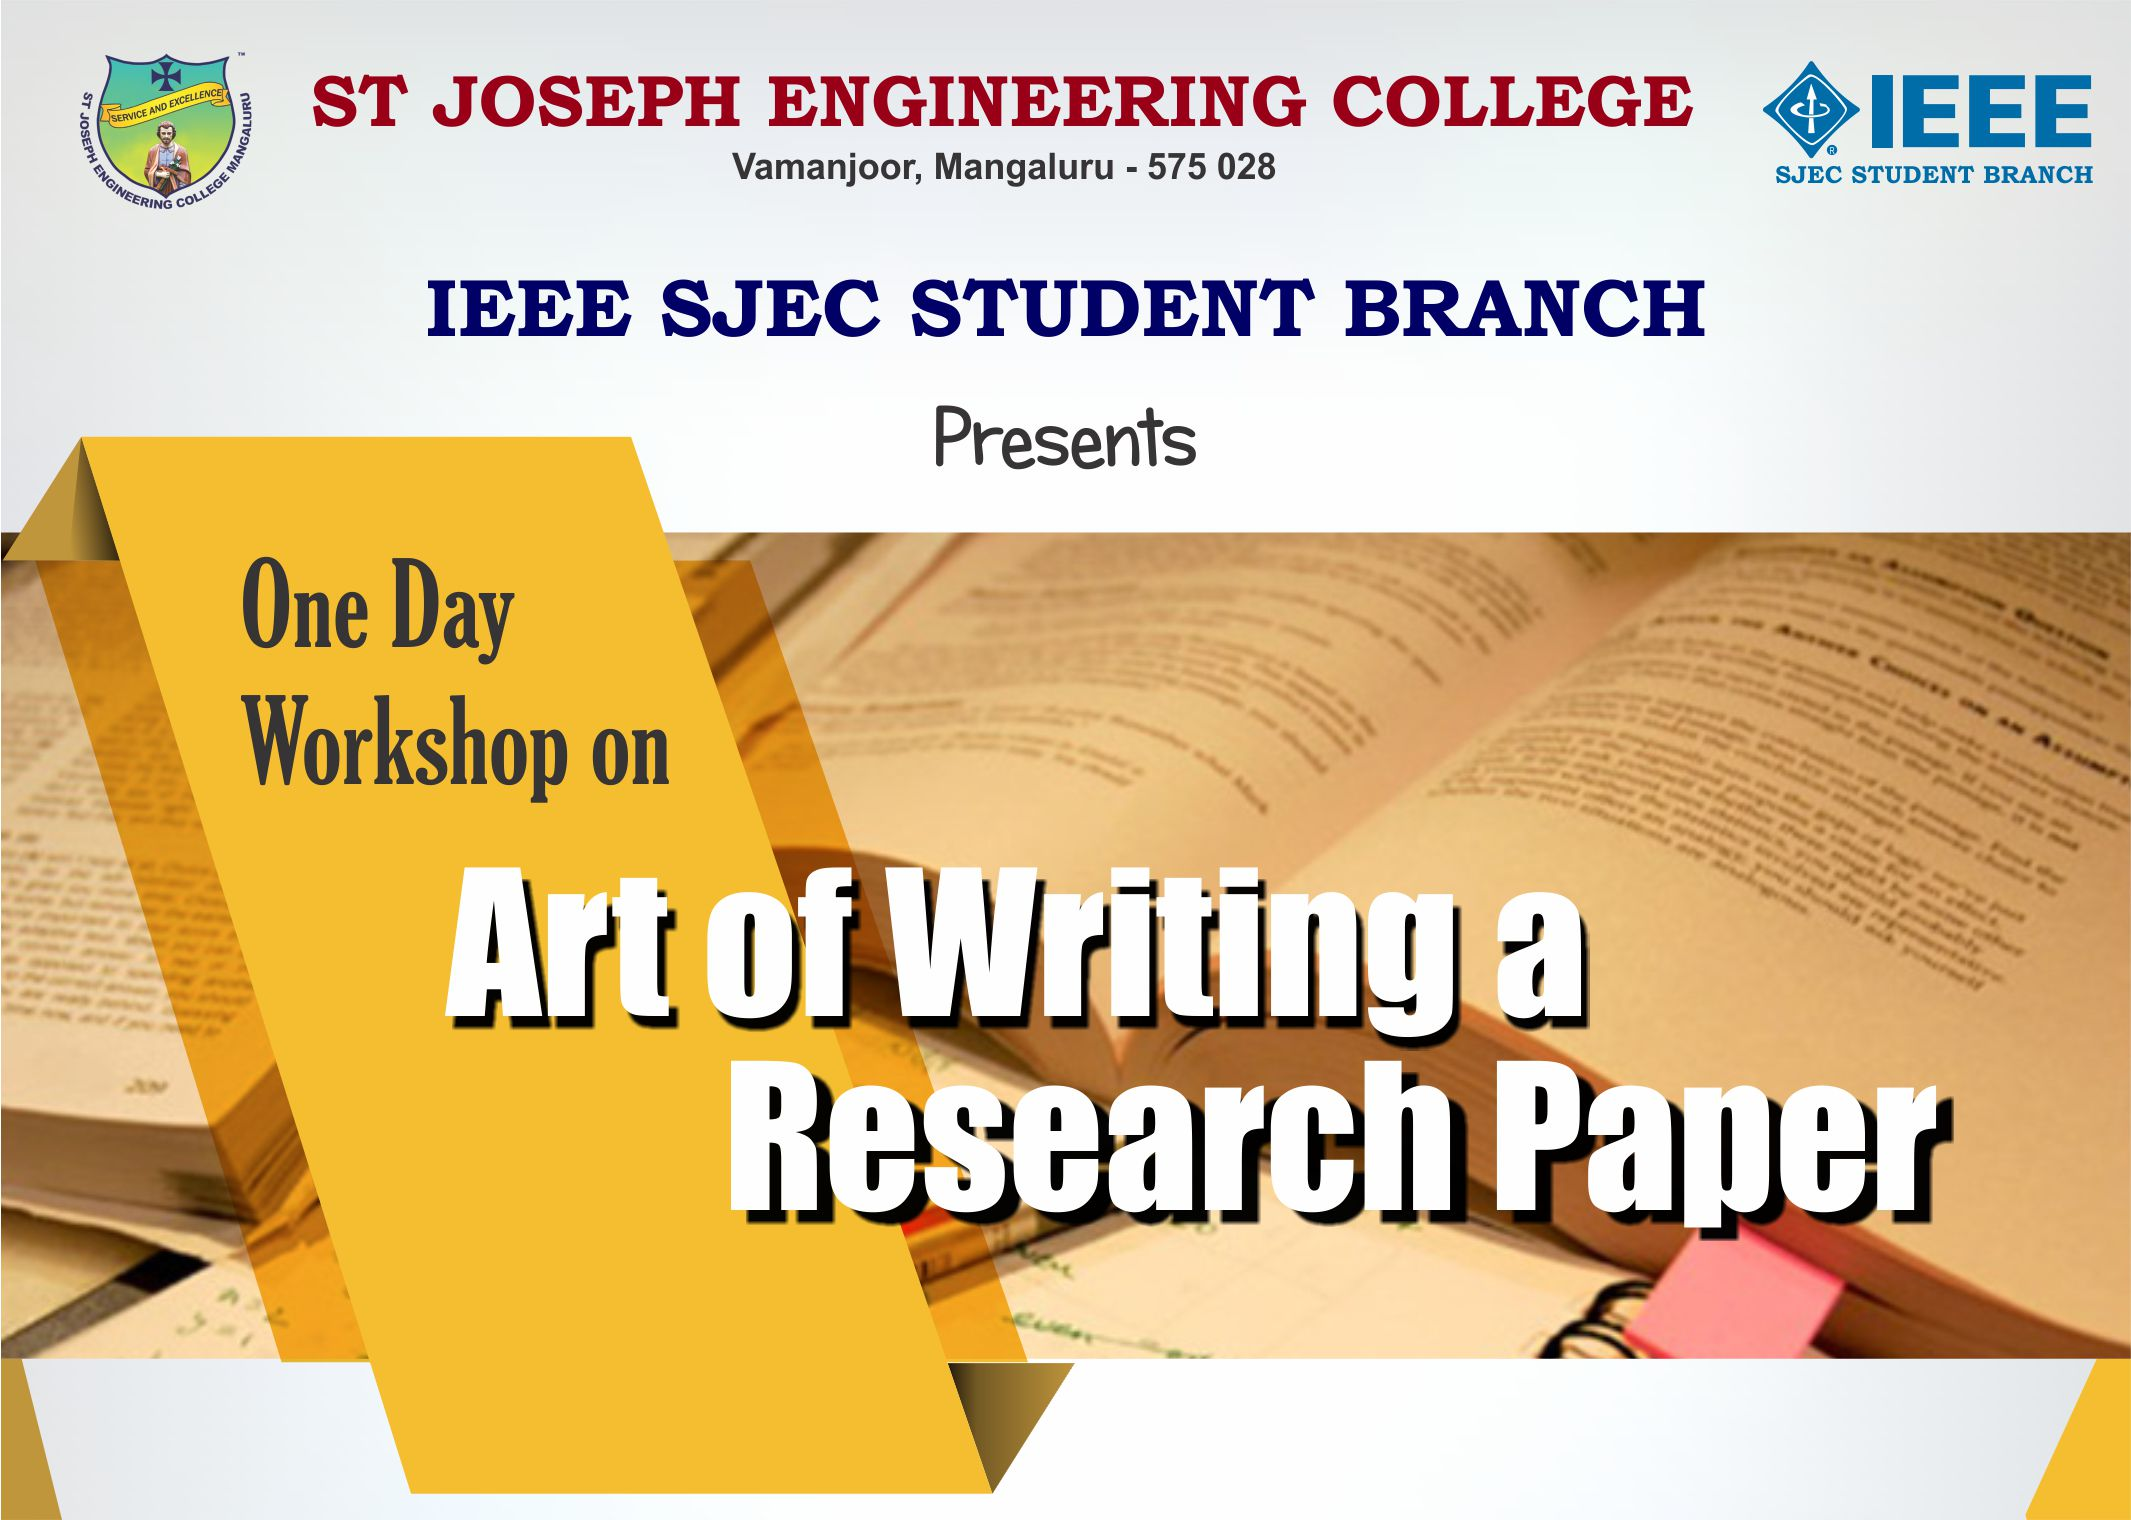 011 Research Paper Writing Workshop Unforgettable Service Online Software Free Download Full